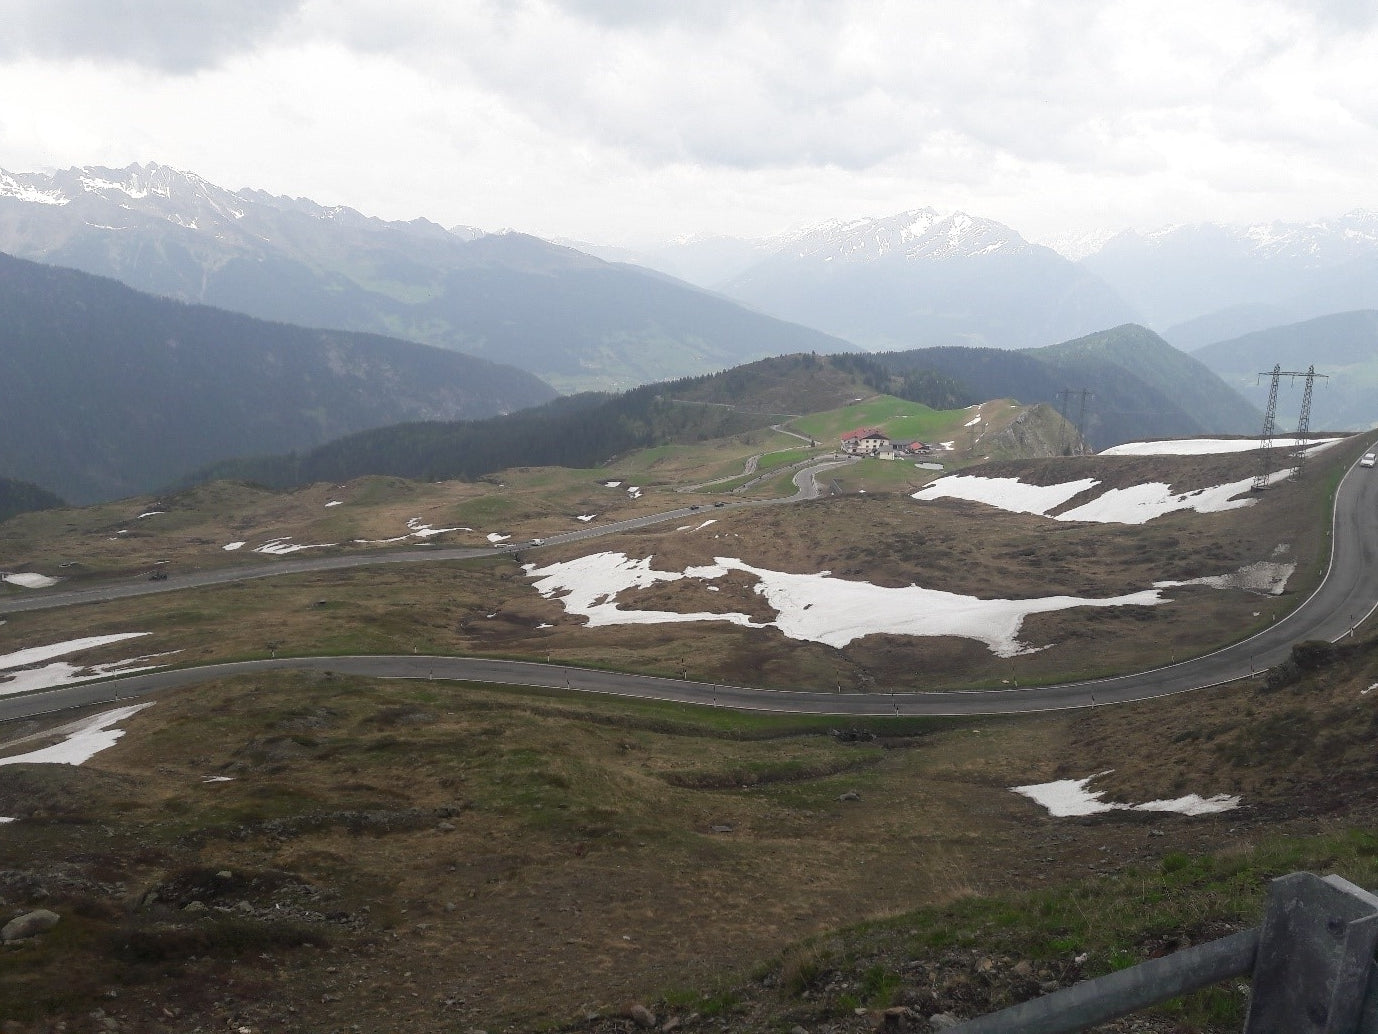 The view from atop the Jaufenpass. An enjoyable HC climb.